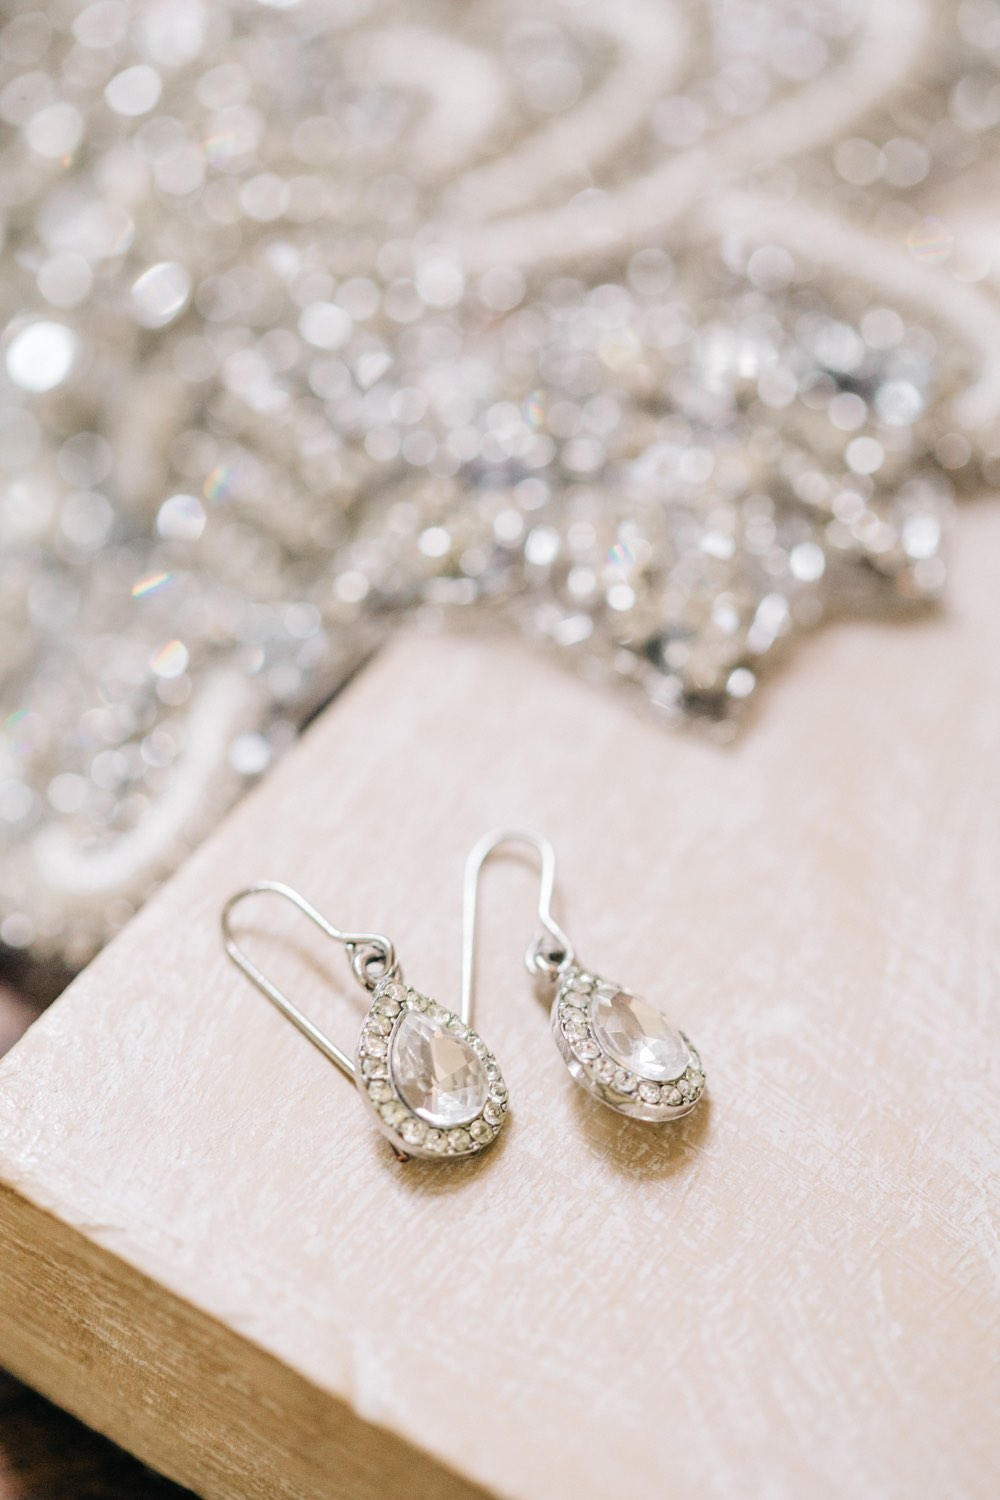 Copy of Copy of Copy of Earrings | Luxury Wedding Planner | Lamare London